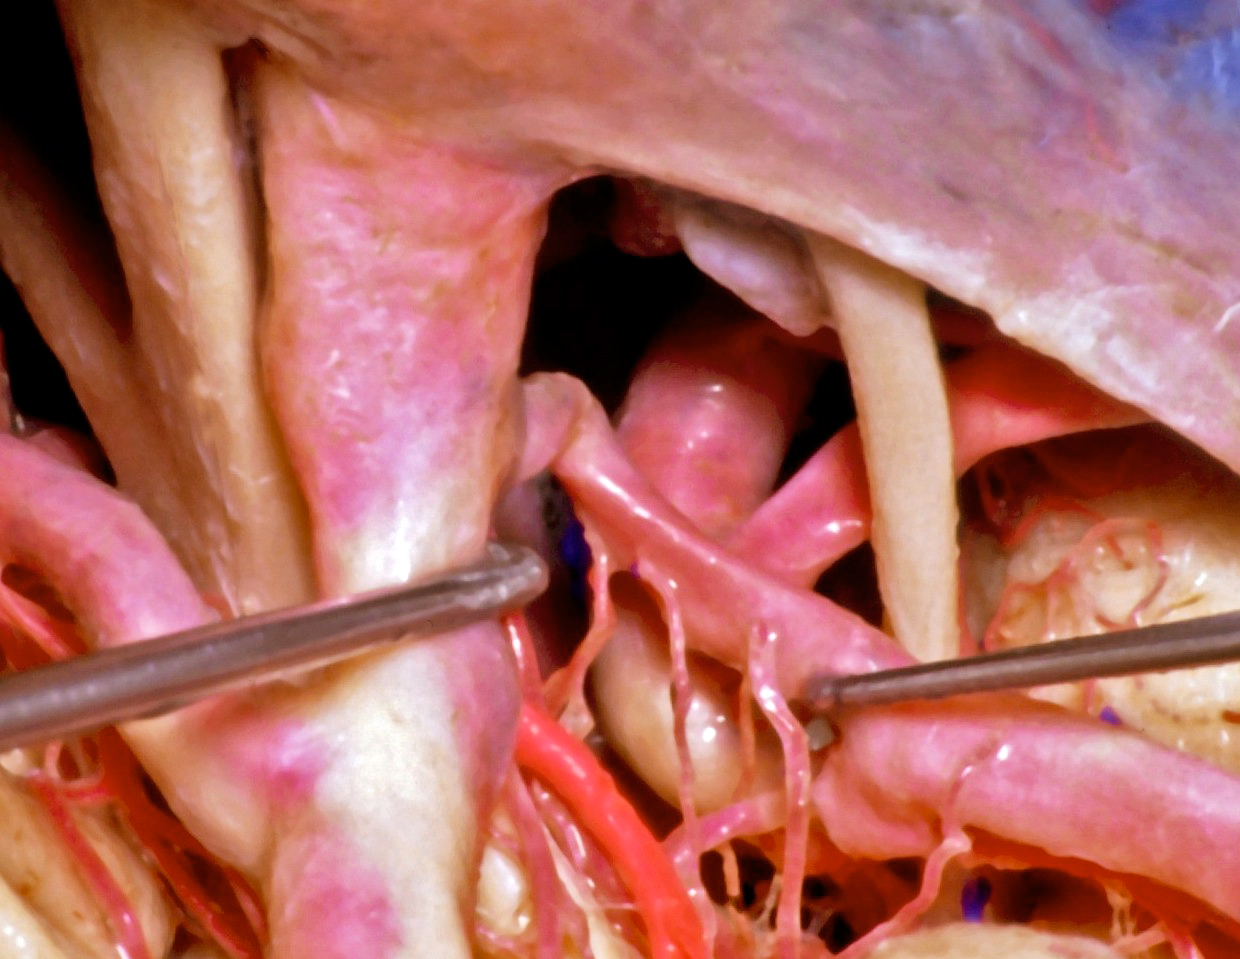 Figure 5: A lateral view across the posterior ICA demonstrates the anatomic relationships between the PCoA (mobilized with the right dissector,) its perforating vessels, and the AChA (in bright red.) The oculomotor nerve is visible (image courtesy of AL Rhoton, Jr.)